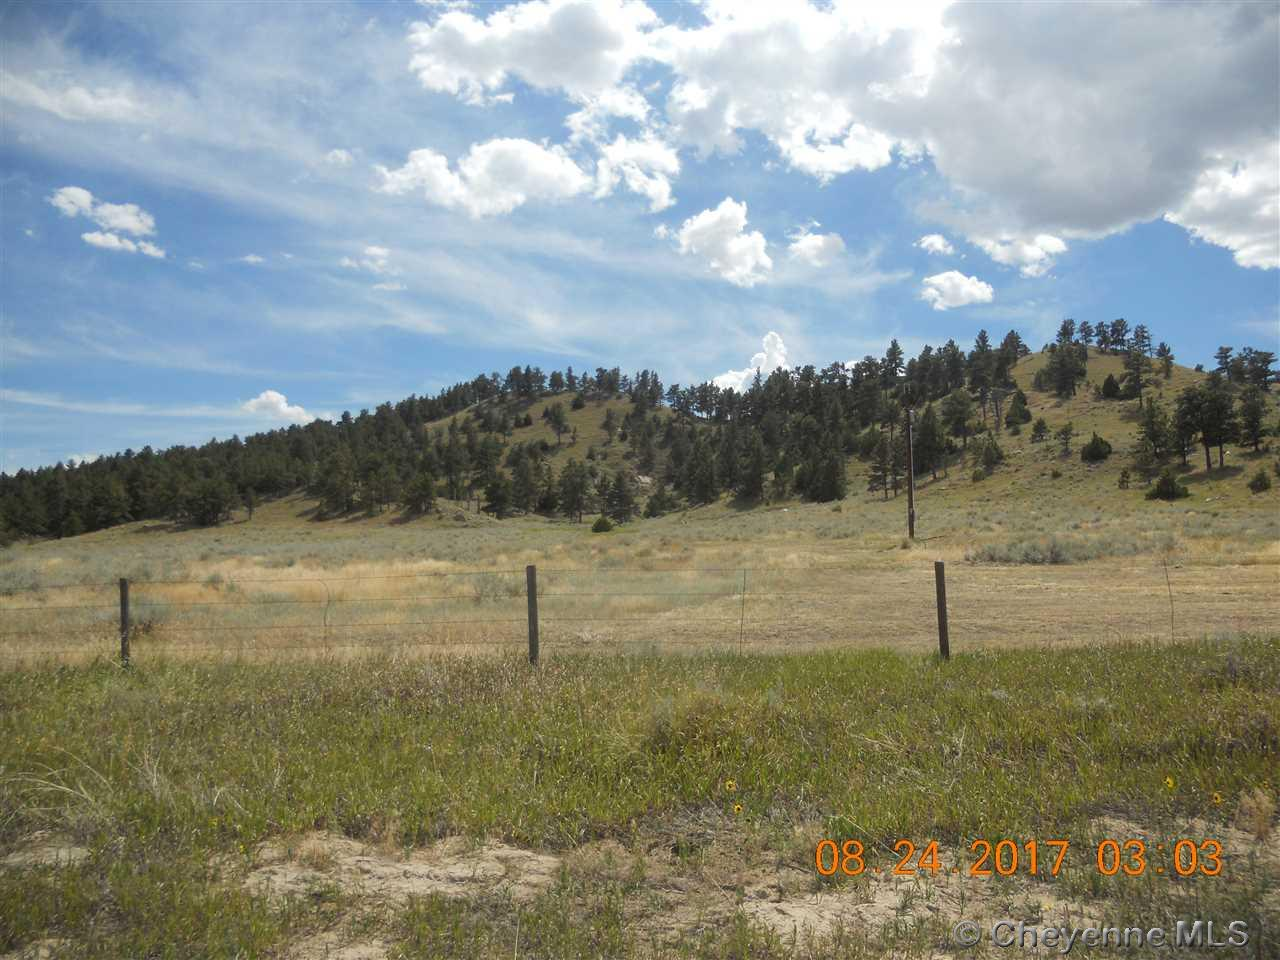 Land for Sale at Lot 4 Wagon Wheel Rd Lot 4 Wagon Wheel Rd Glendo, Wyoming 82213 United States